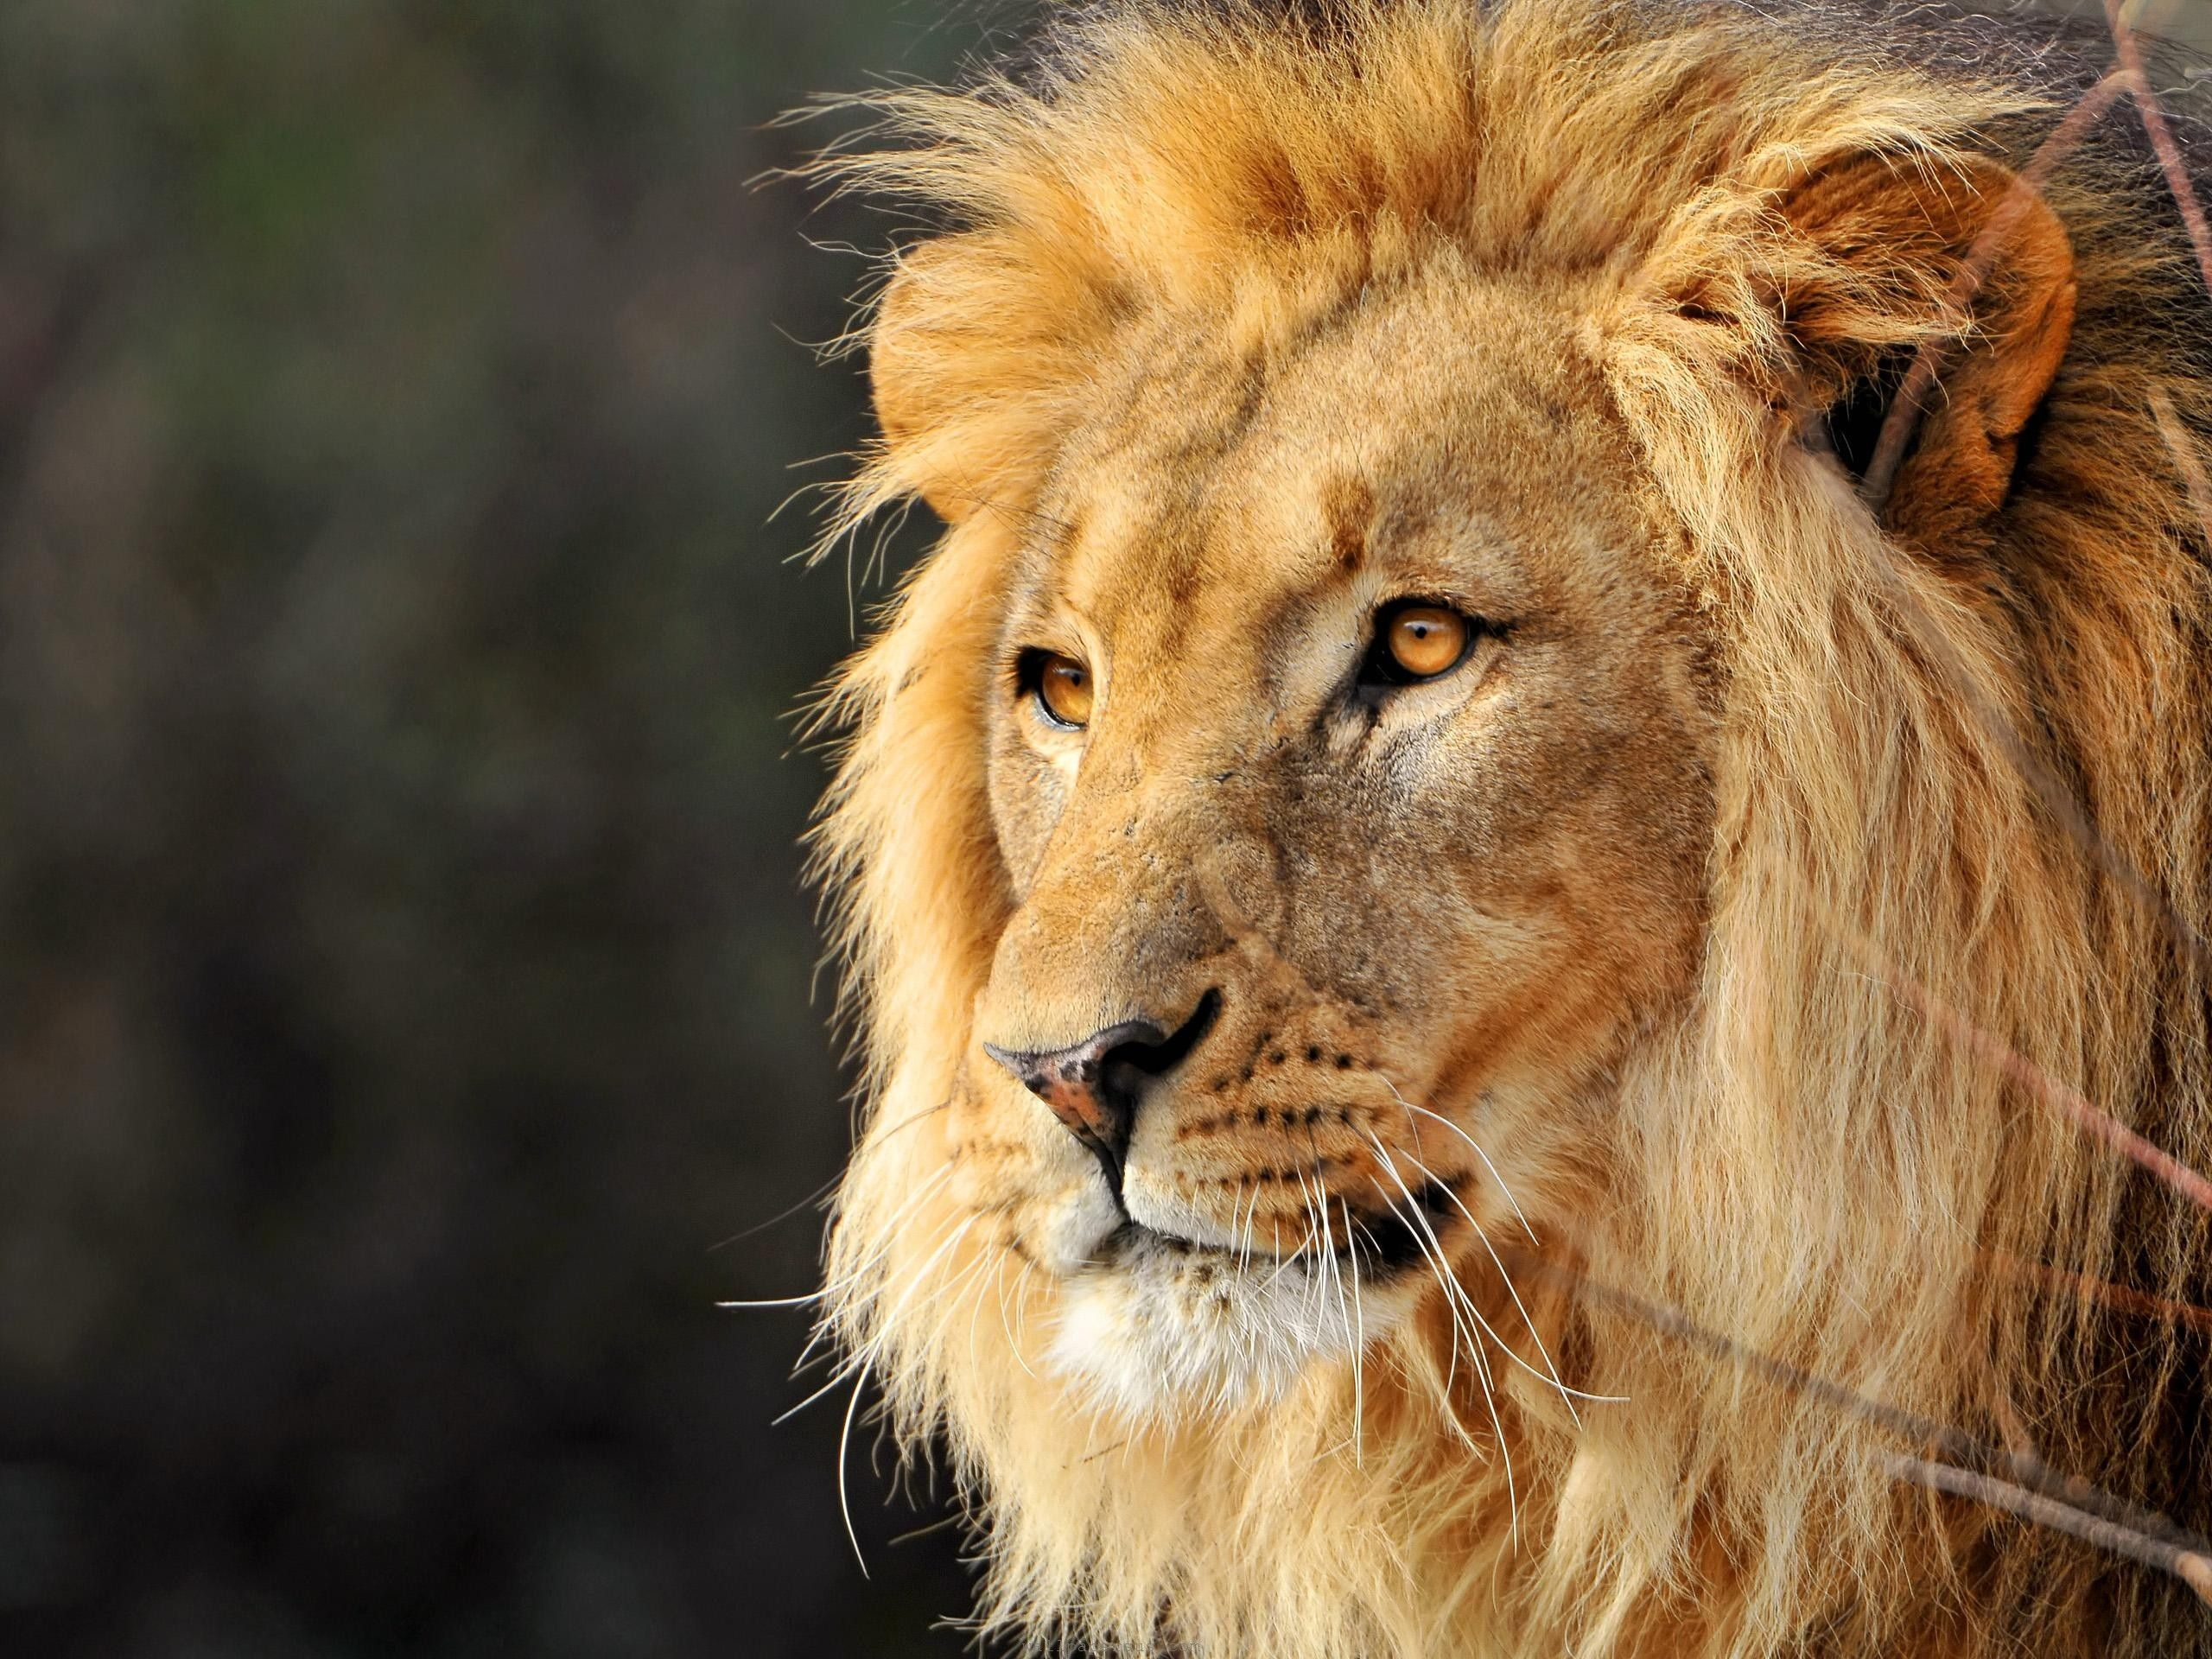 Res: 2560x1920, The Lion Face Wallpaper HD wallpapers - The Lion Face Wallpaper